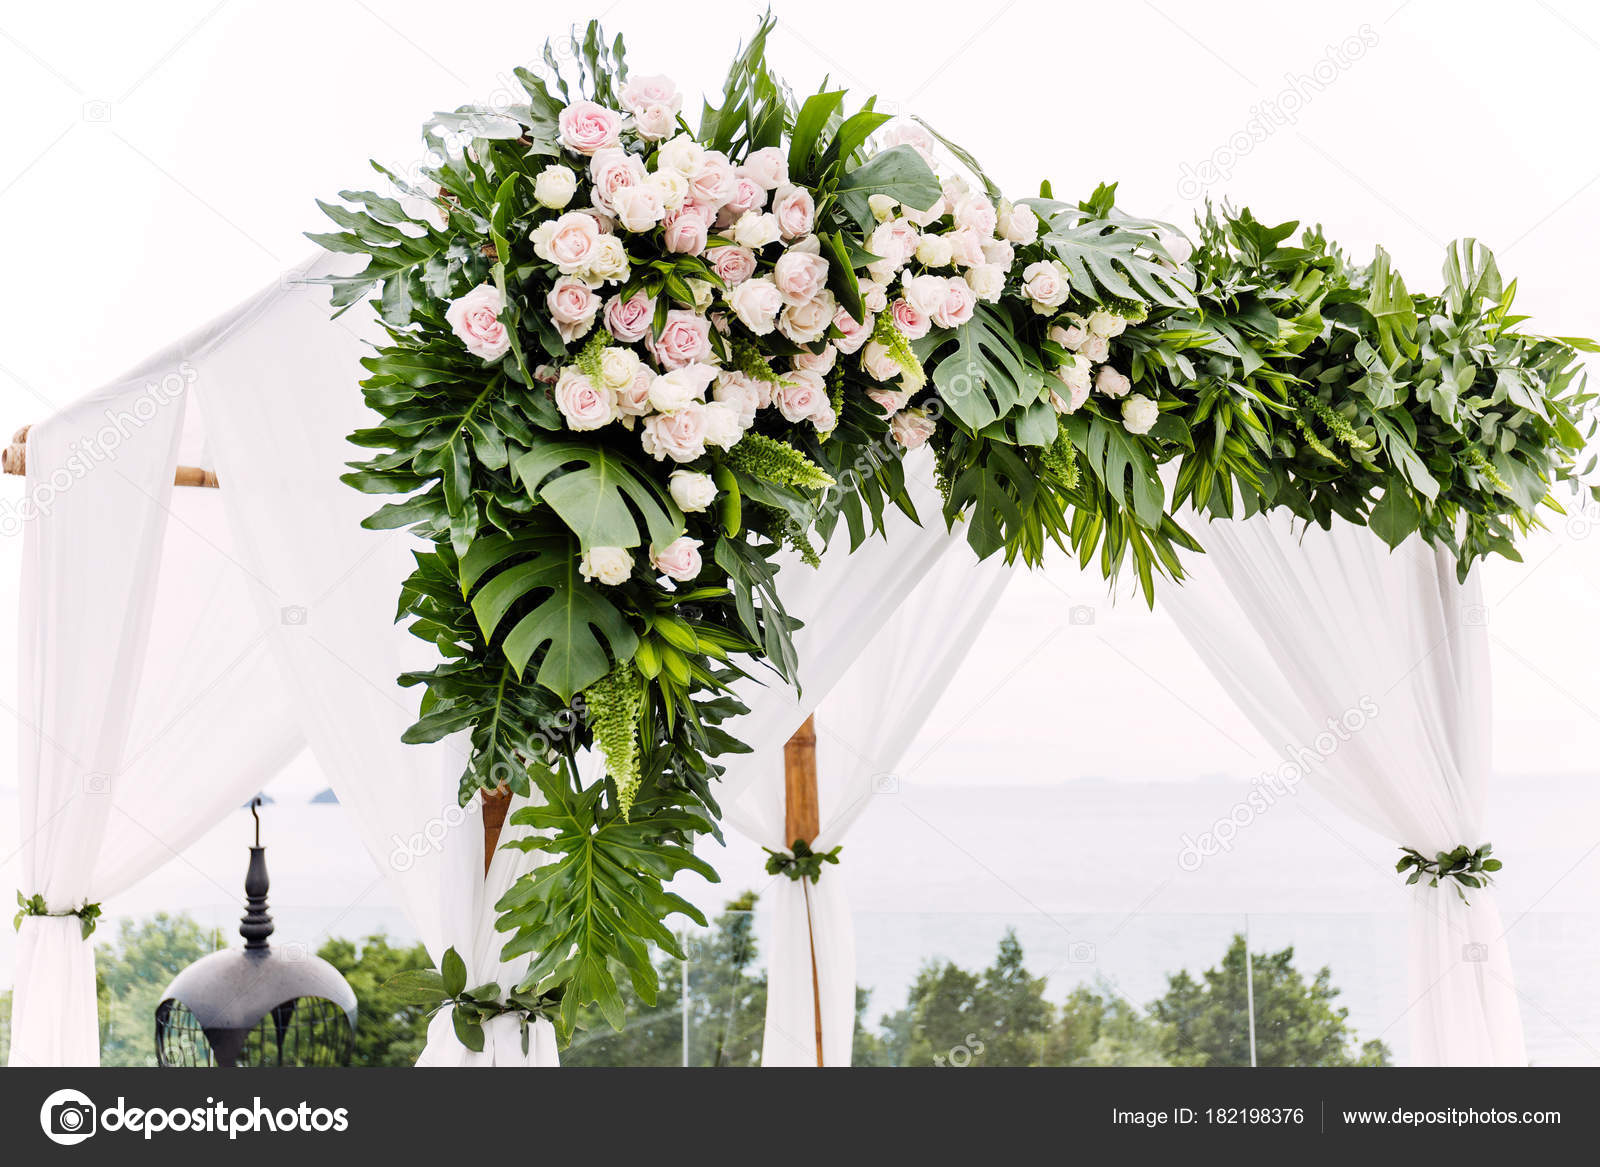 White wedding arch decorated flowers floral stock photo mrseksan white wedding arch decorated flowers floral stock photo junglespirit Gallery